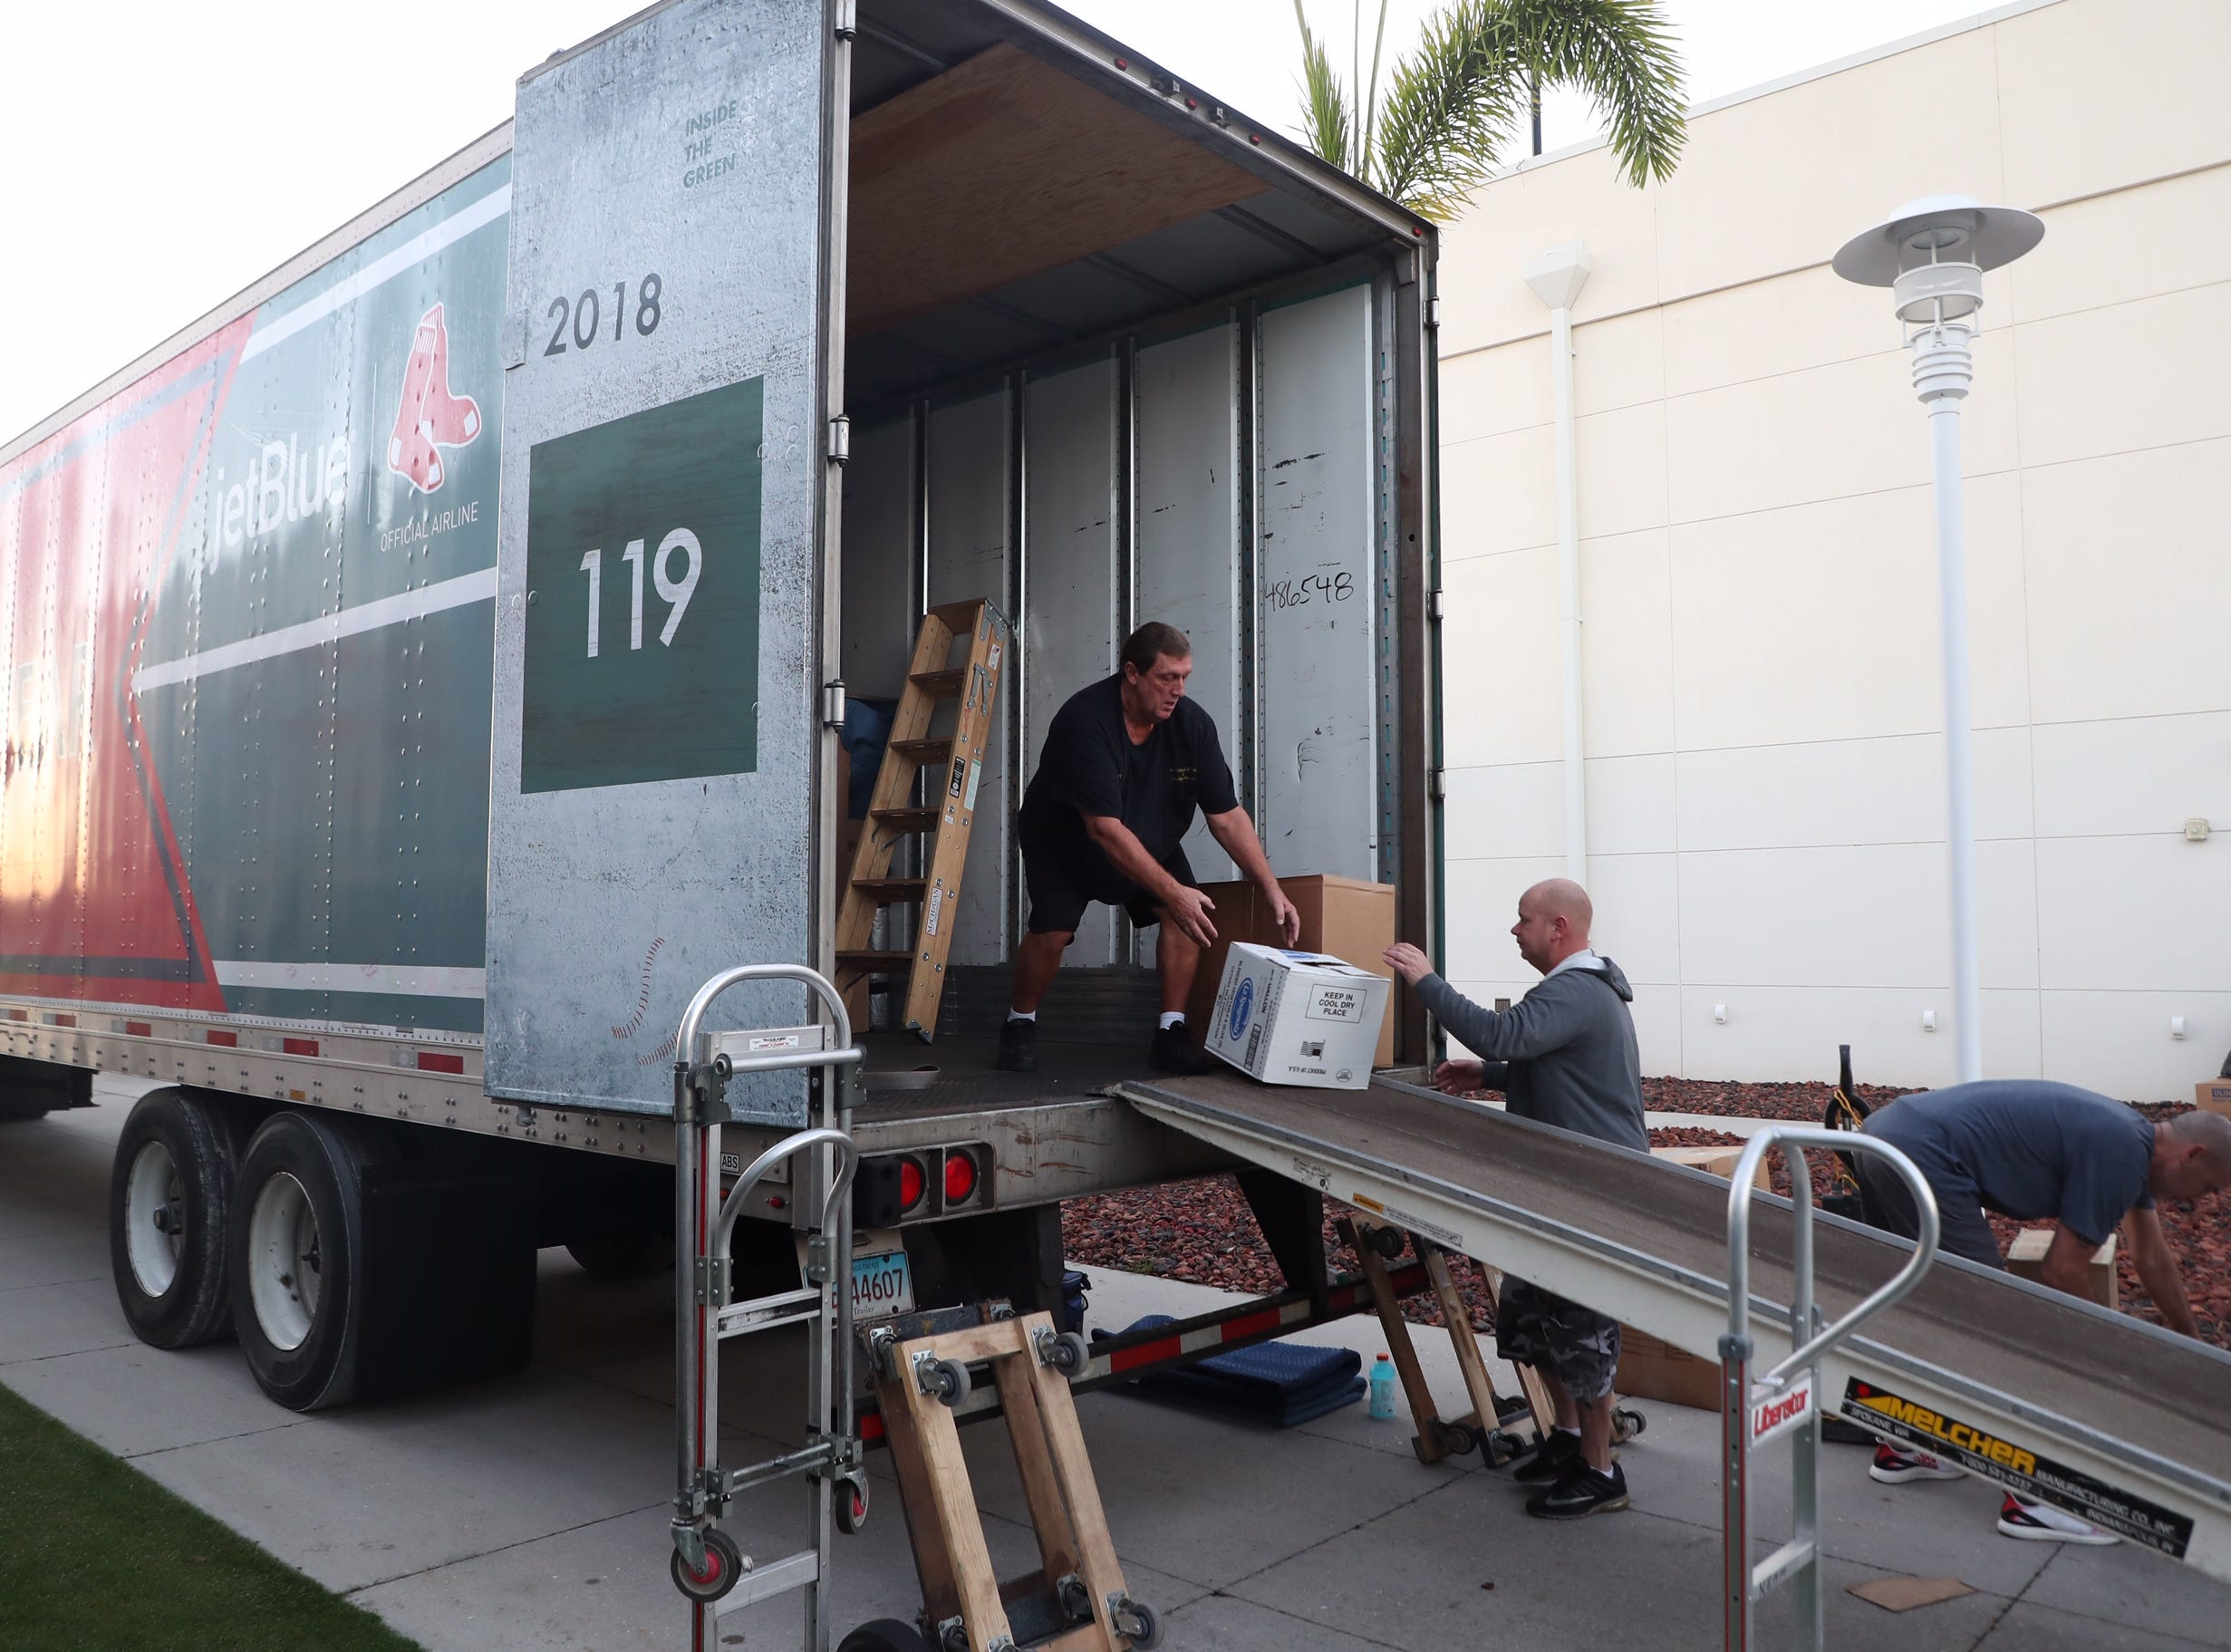 It's truck day at JetBlue Park in Fort Myers.  It's the annual unloading of the truck that holds Boston Red Sox gear. The Red Sox were world champions last year.